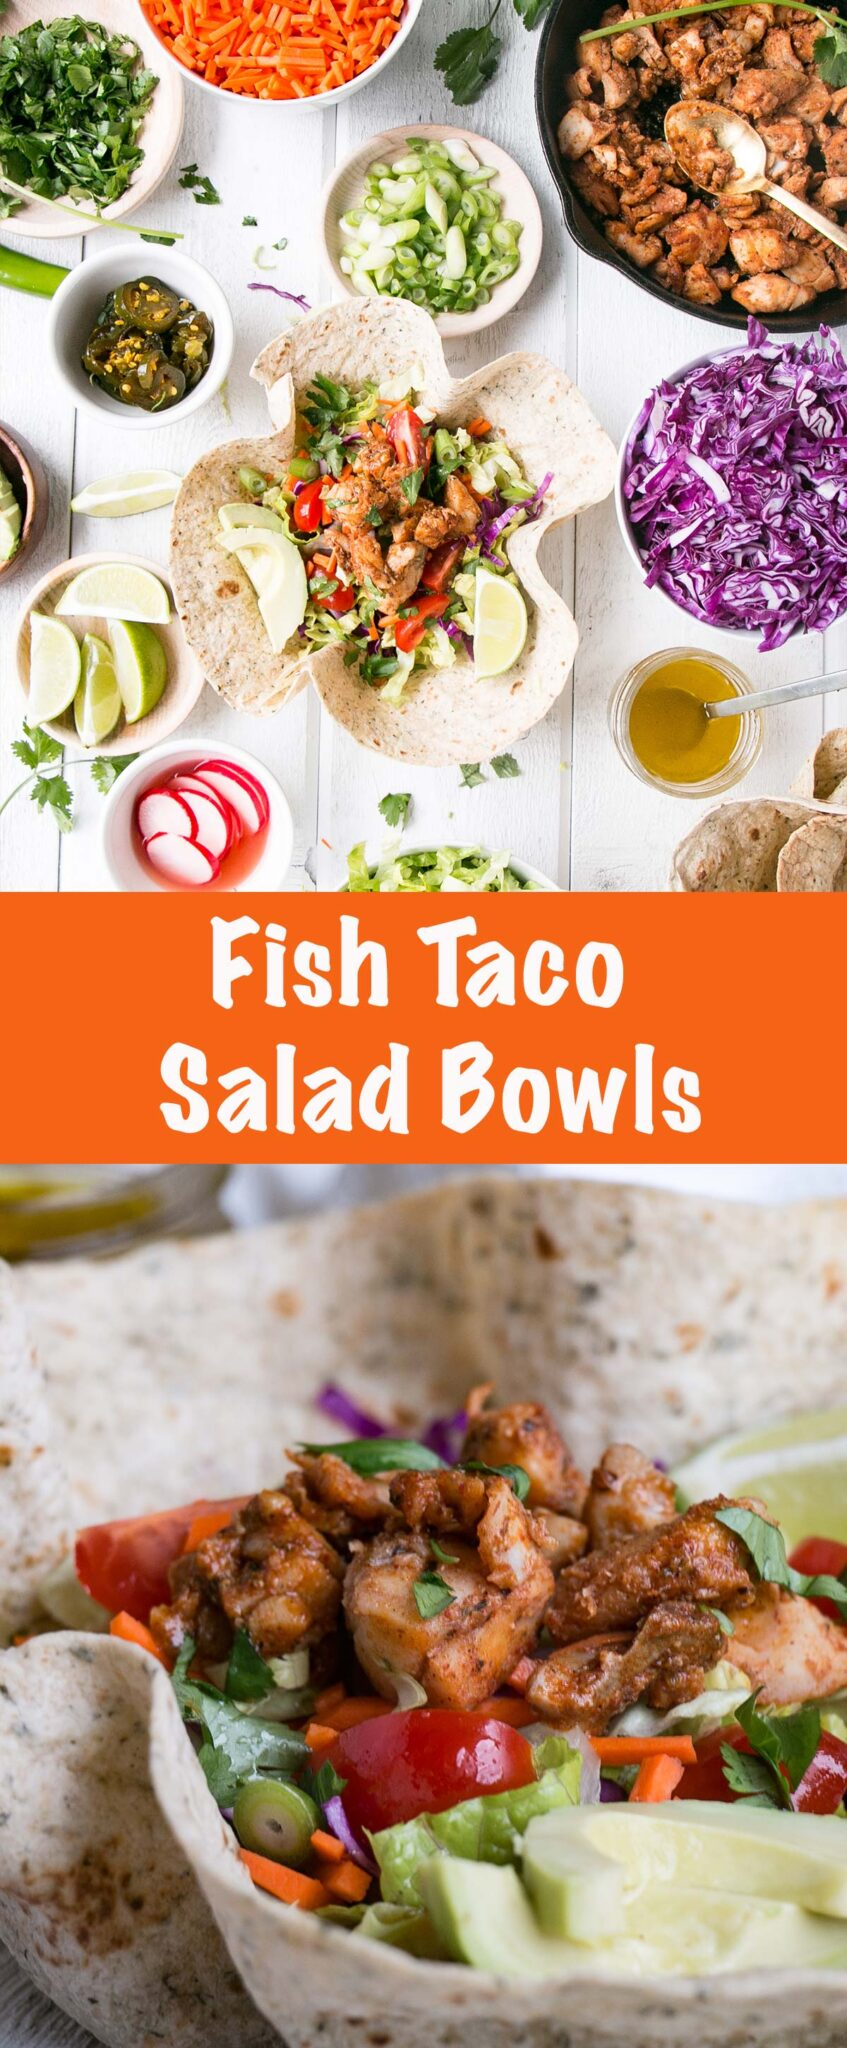 Eat the rainbow of deliciousness with these easy and quick to assemble Fish Taco Salad Bowls. Plus, eating the bowl is always more fun! #tacos #fishtacos #tacotuesday #healthy